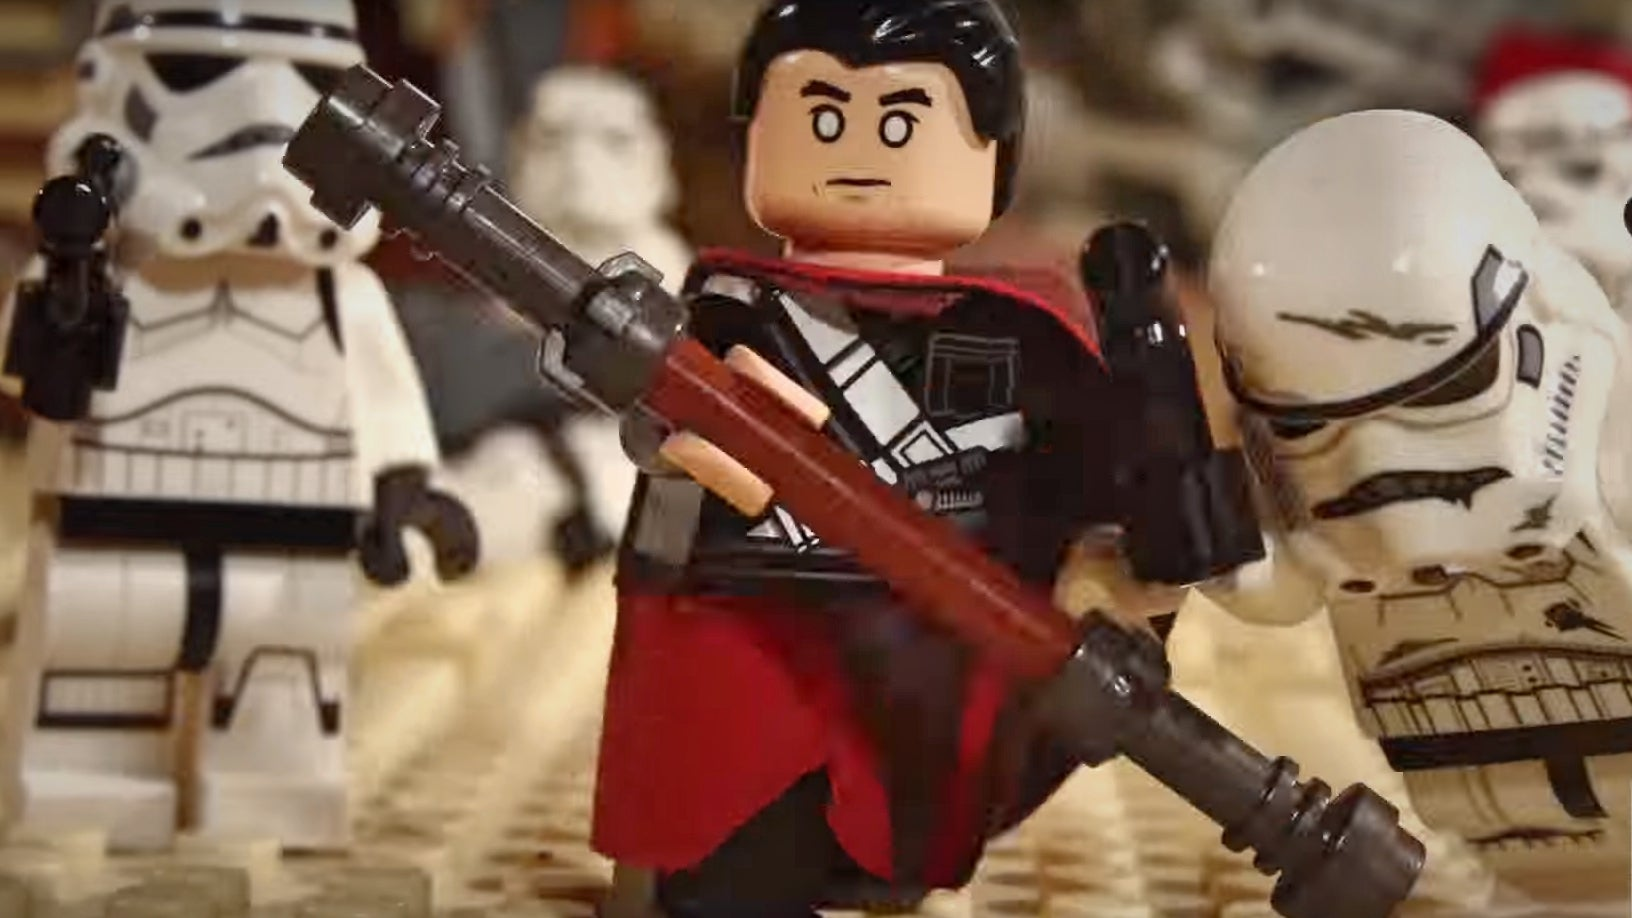 Rogue One's Chirrut Imwe Goes To Town On The Whole Dang Empire In This LEGO Parody